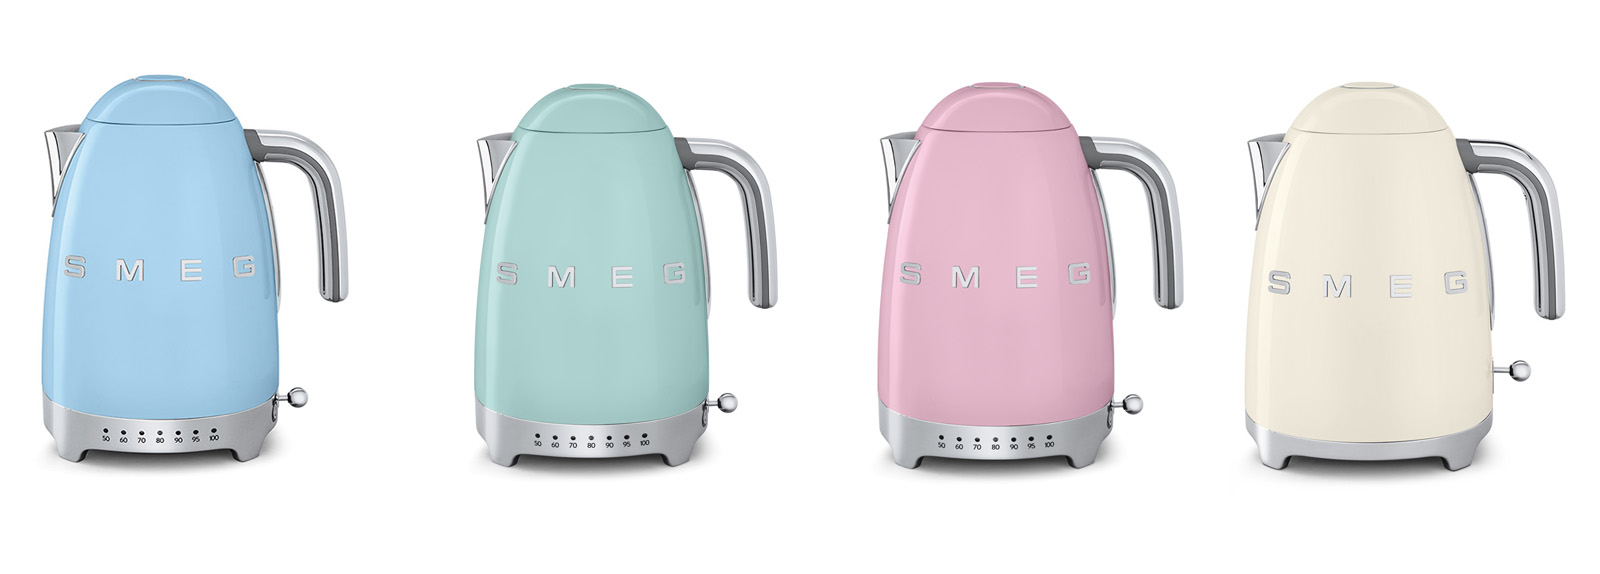 marvelous Retro Kitchen Small Appliances #5: Collect this idea Smeg 50u0027s Retro Style small home appliances (2)